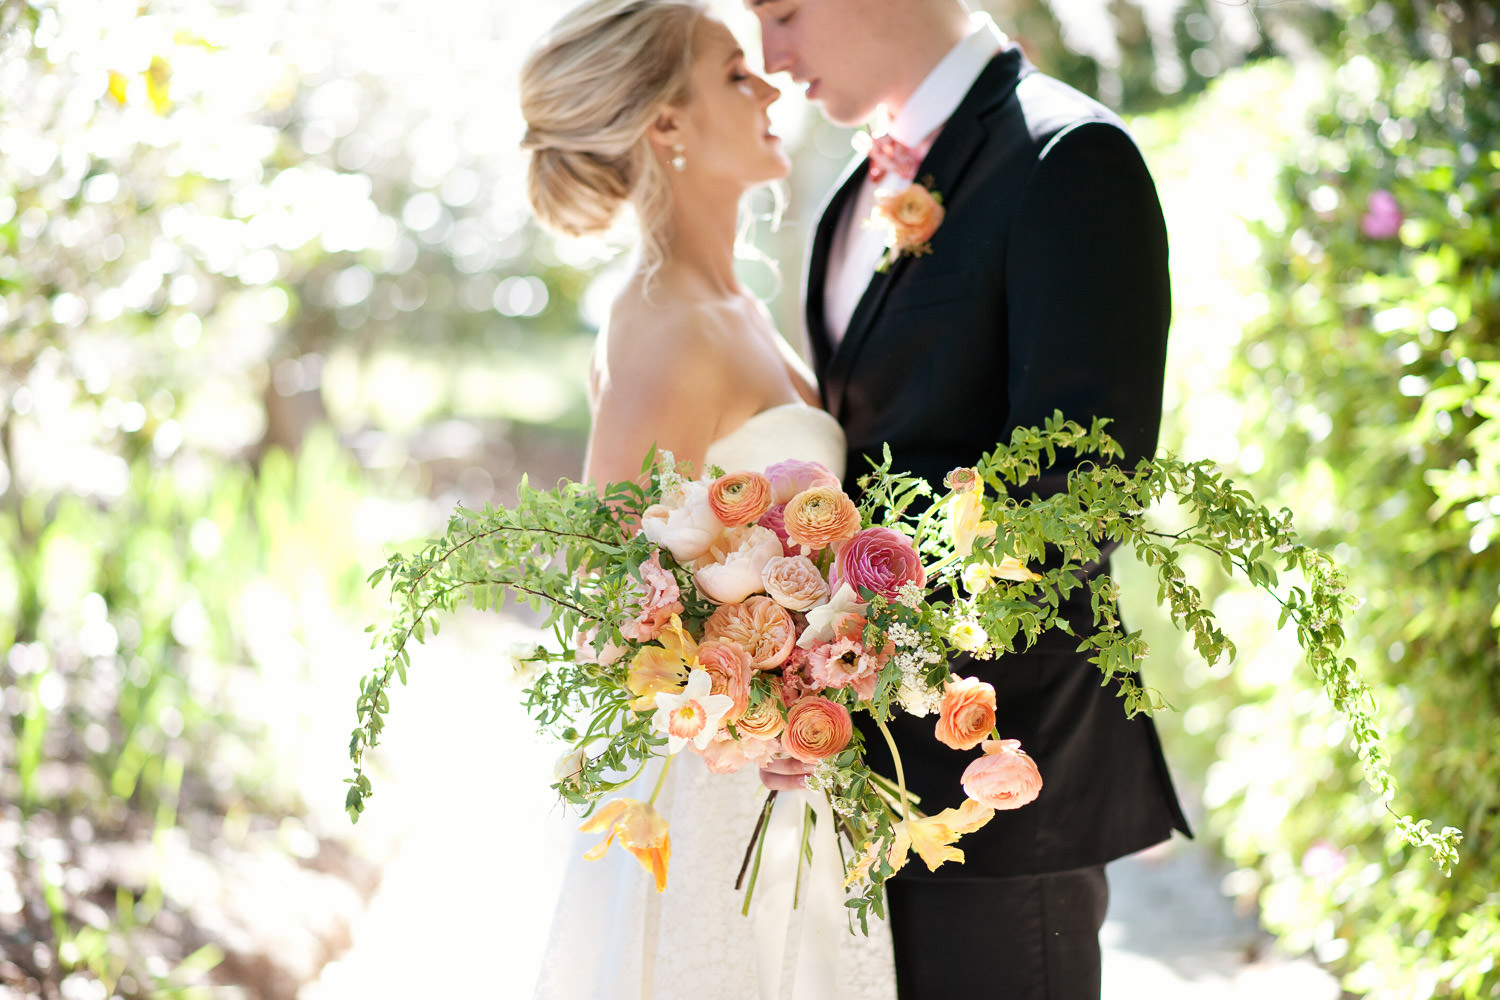 Bride and groom with her romantic bouquet captured by Tara Whittaker Photography